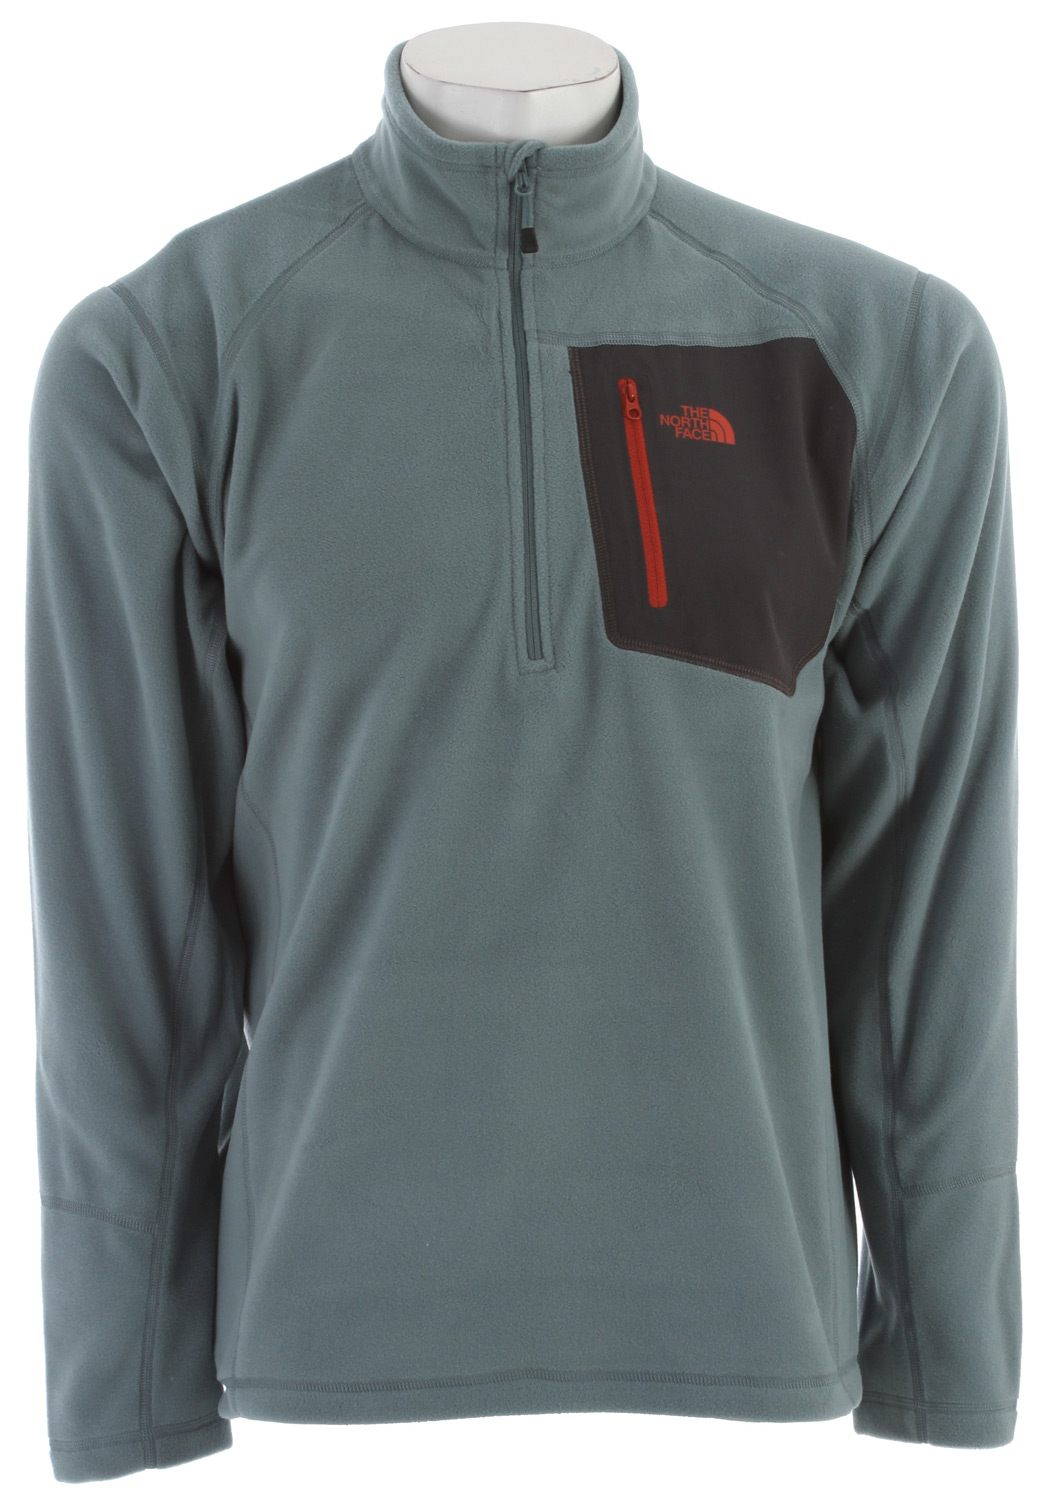 "A breathable, quick-drying midweight zip-neck constructed with Polartec fleece ideal for layering. Key Features of The North Face Tka 100 Trinity Alps 1/4 Zip Jacket: Fabric: 160 g/m (4.64 oz/yd ) 100% polyester Center Back: 27.5"" Midweight layering piece Ultraviolet Protection Factor (UPF) ??? Secure Napoleon zip pocket Flat-locked stitching for strength and reduced abrasion Reverse-coil zips for finished look - $45.95"